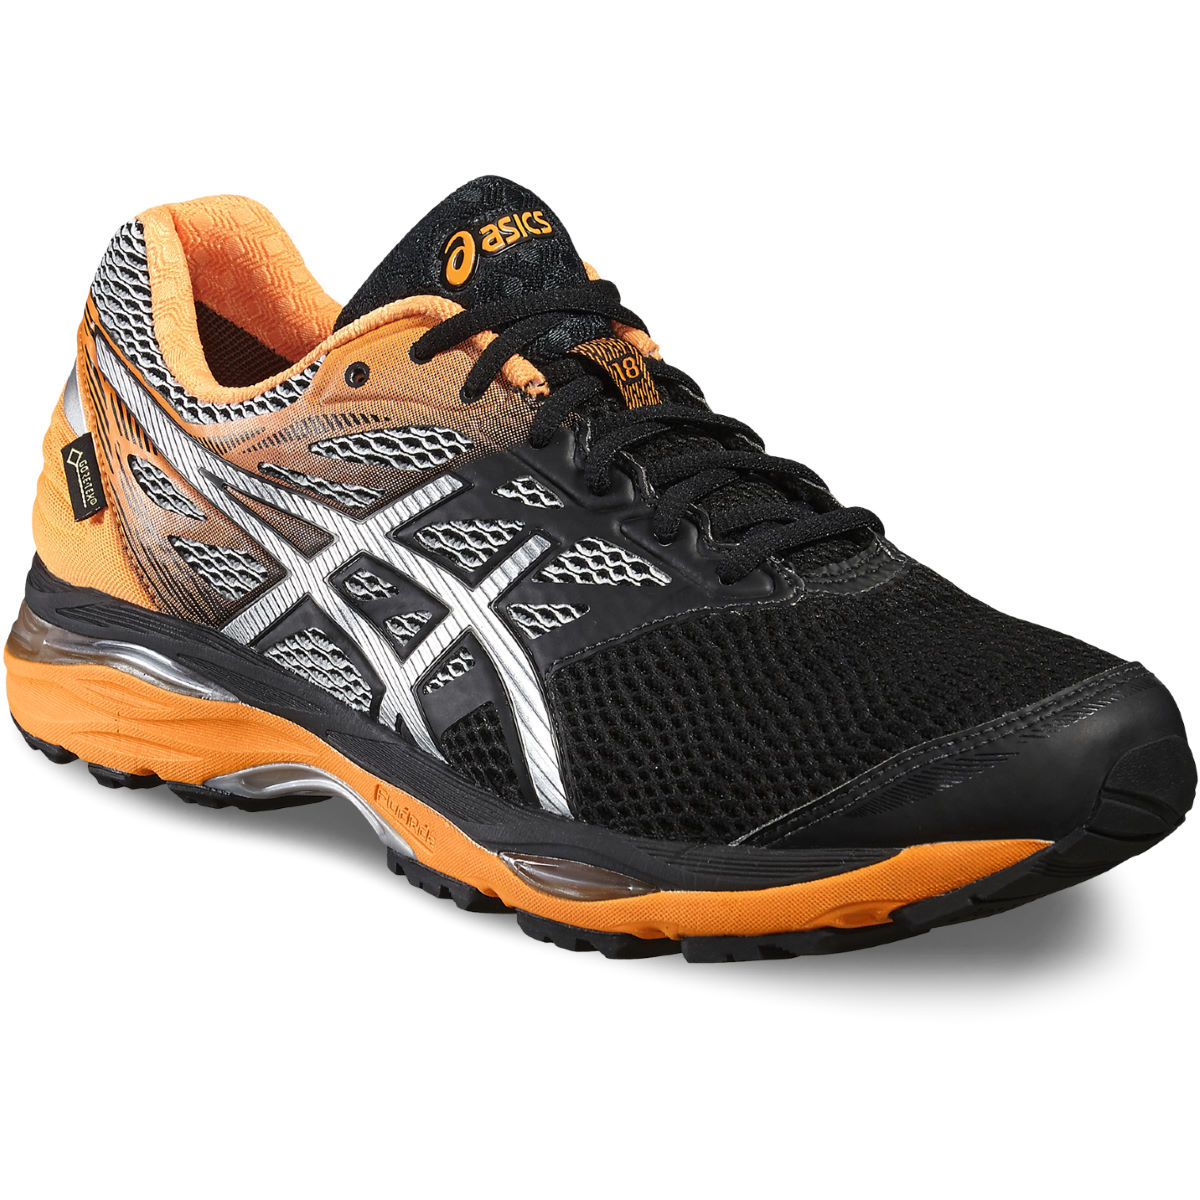 Asics GelCumulus 18 GTX Shoes (AW16)   Cushion Running Shoes